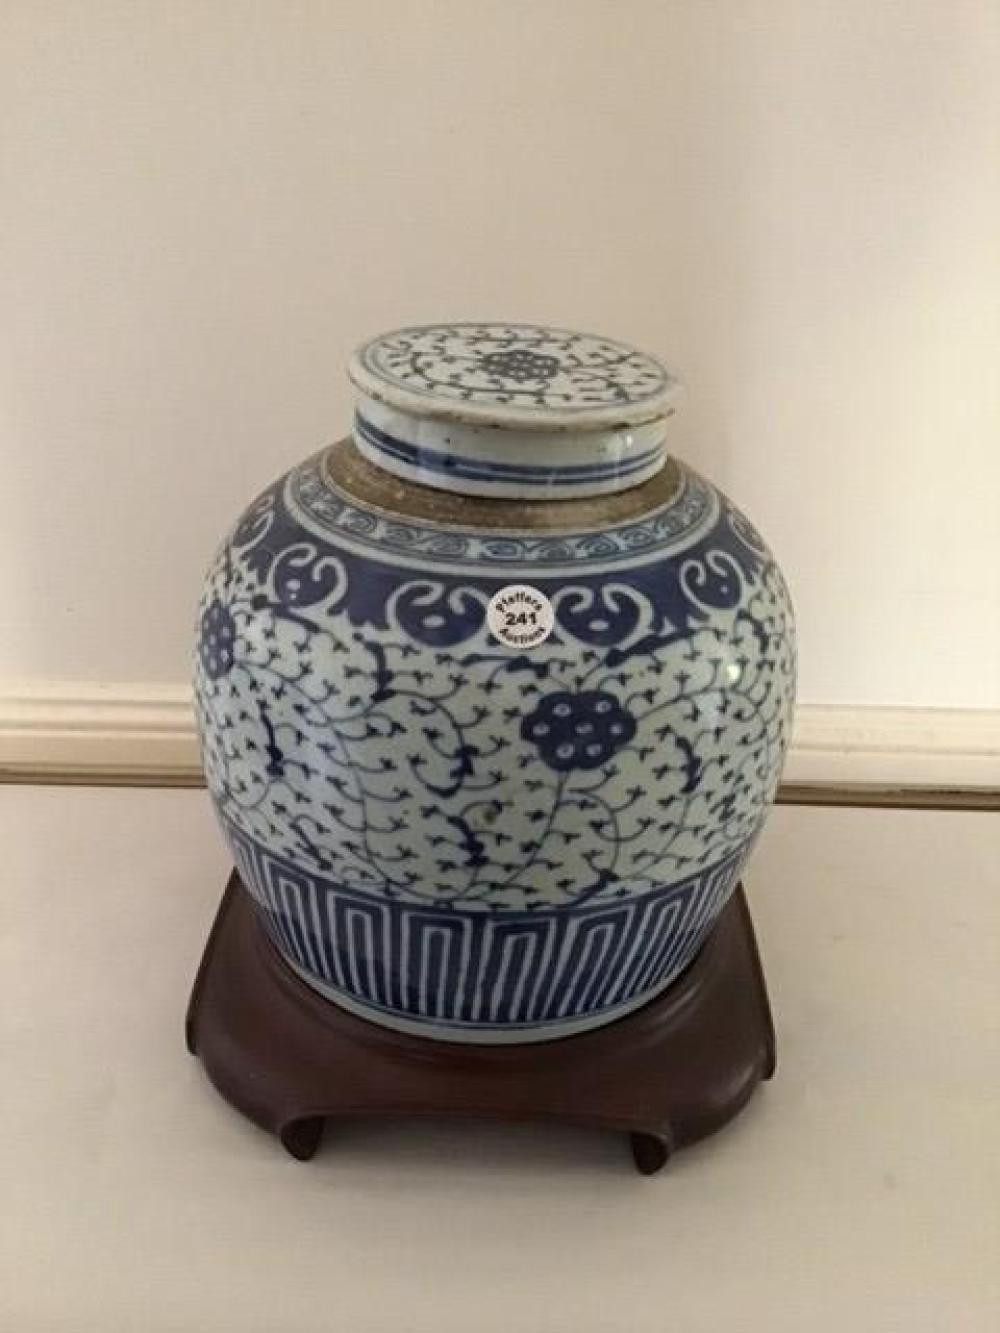 Antique Chinese blue and white underglaze porcelain lidded jar on wood stand 27 cms tall